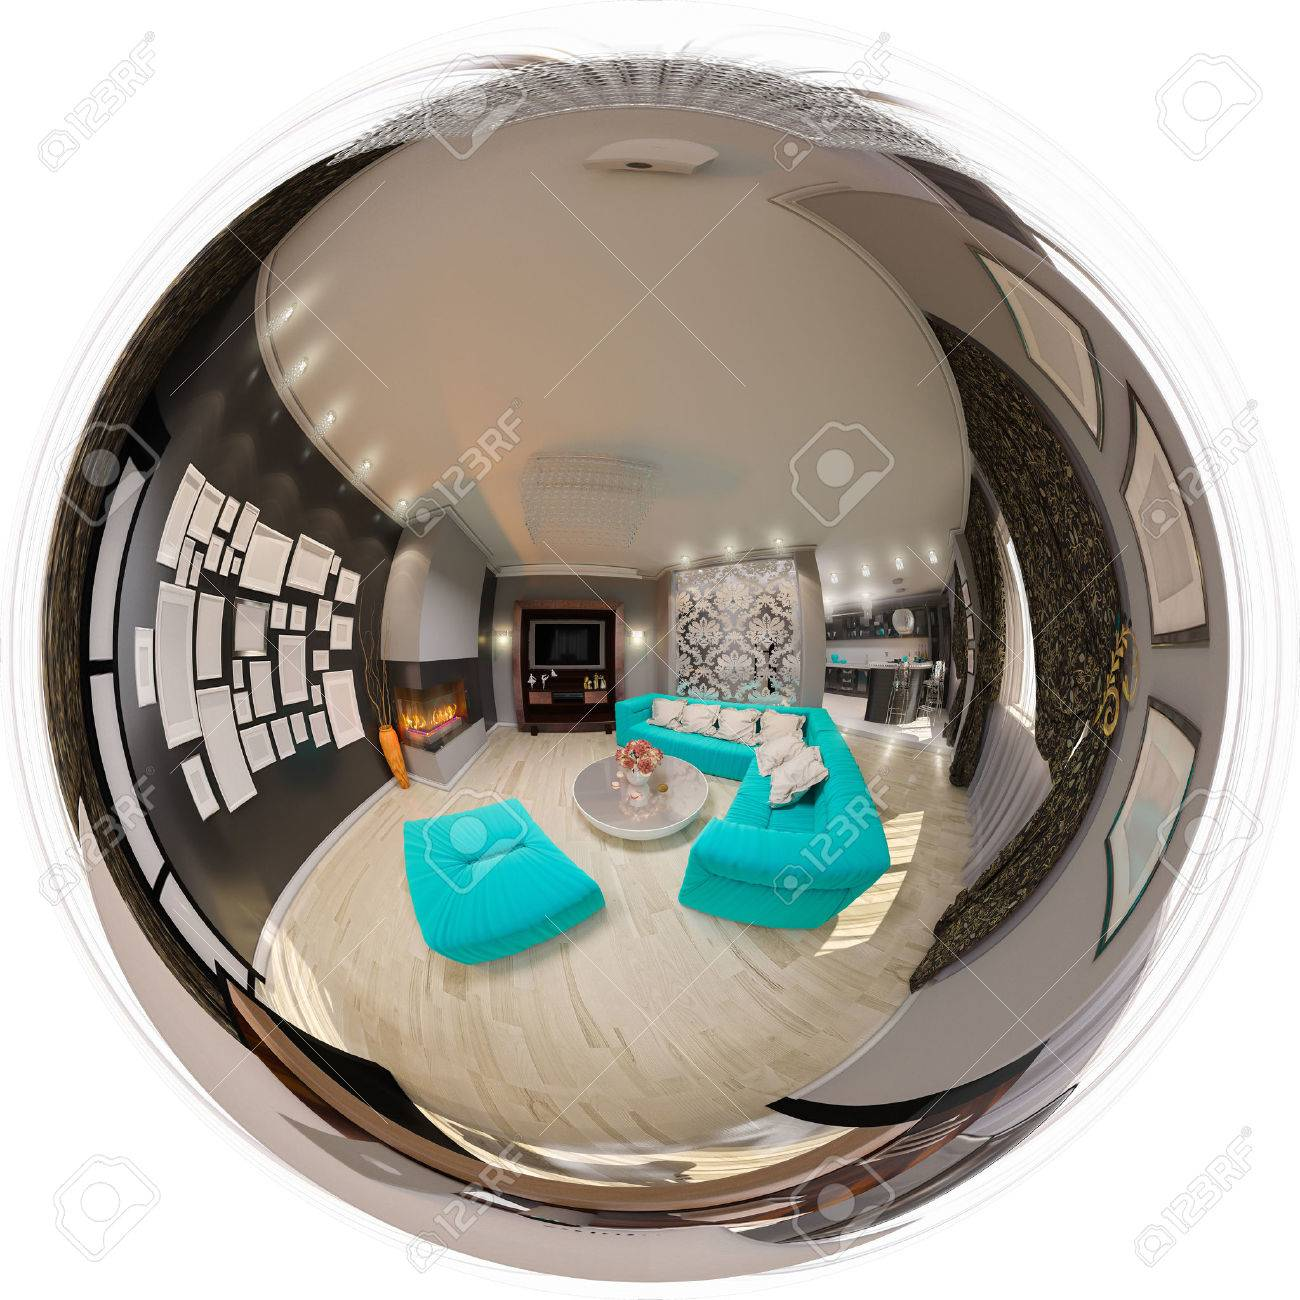 3d illustration spherical 360 degrees, seamless panorama of living room interior design. The design of the living room in the art deco style with turquoise accents - 64190318